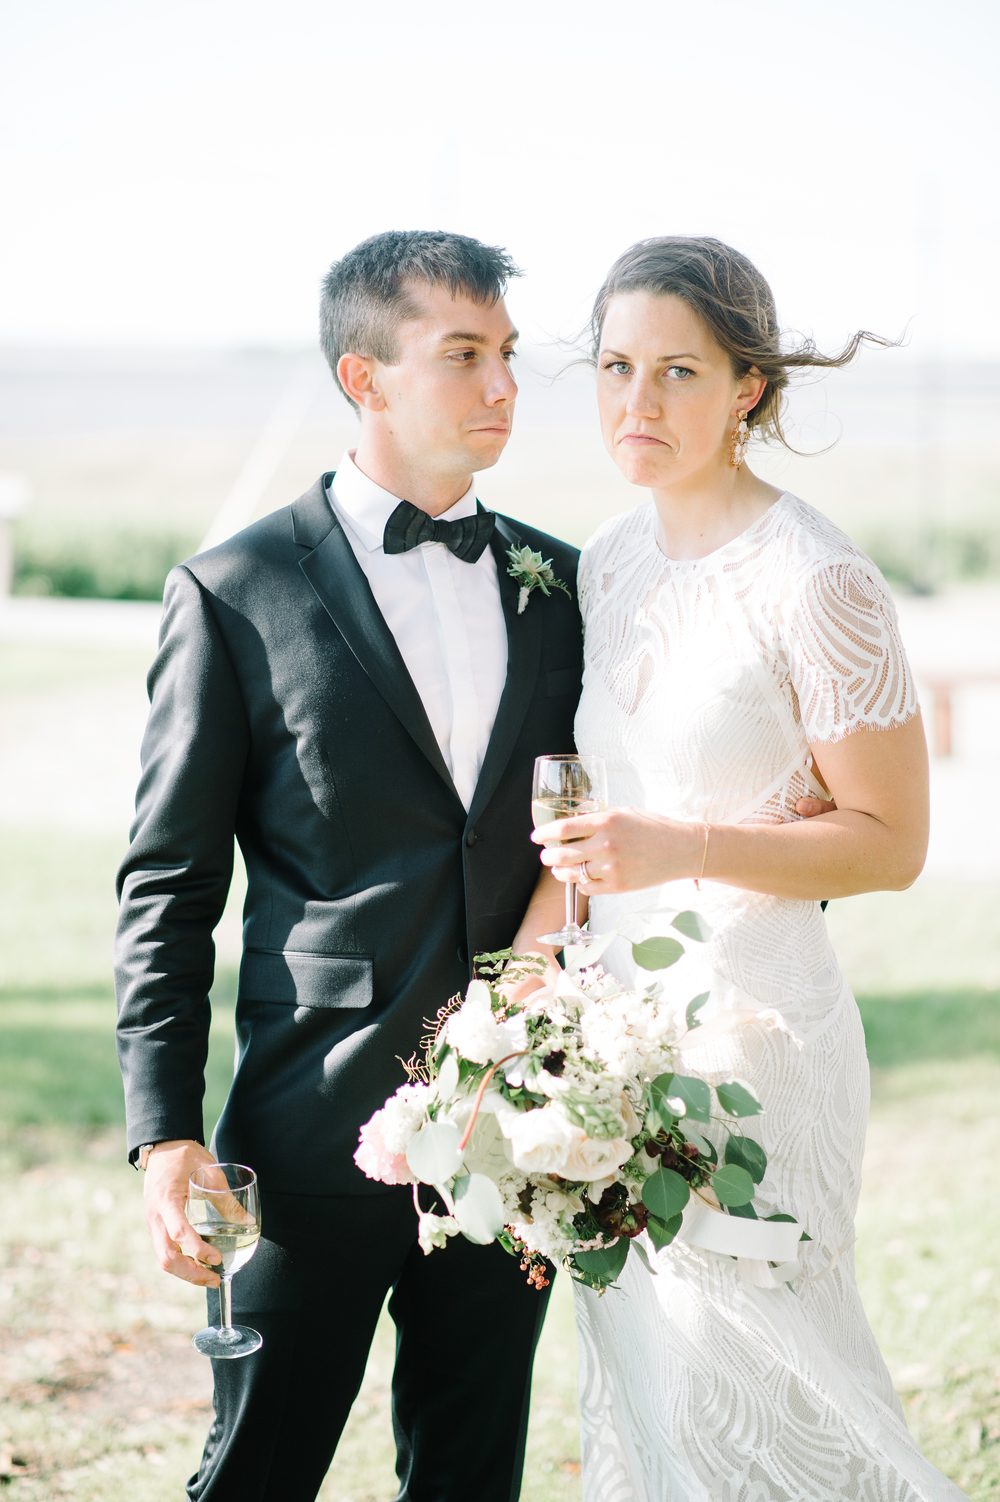 Mary+Zach-LowndesGroveWeddingbyAaronandJillianPhotography-478.jpg